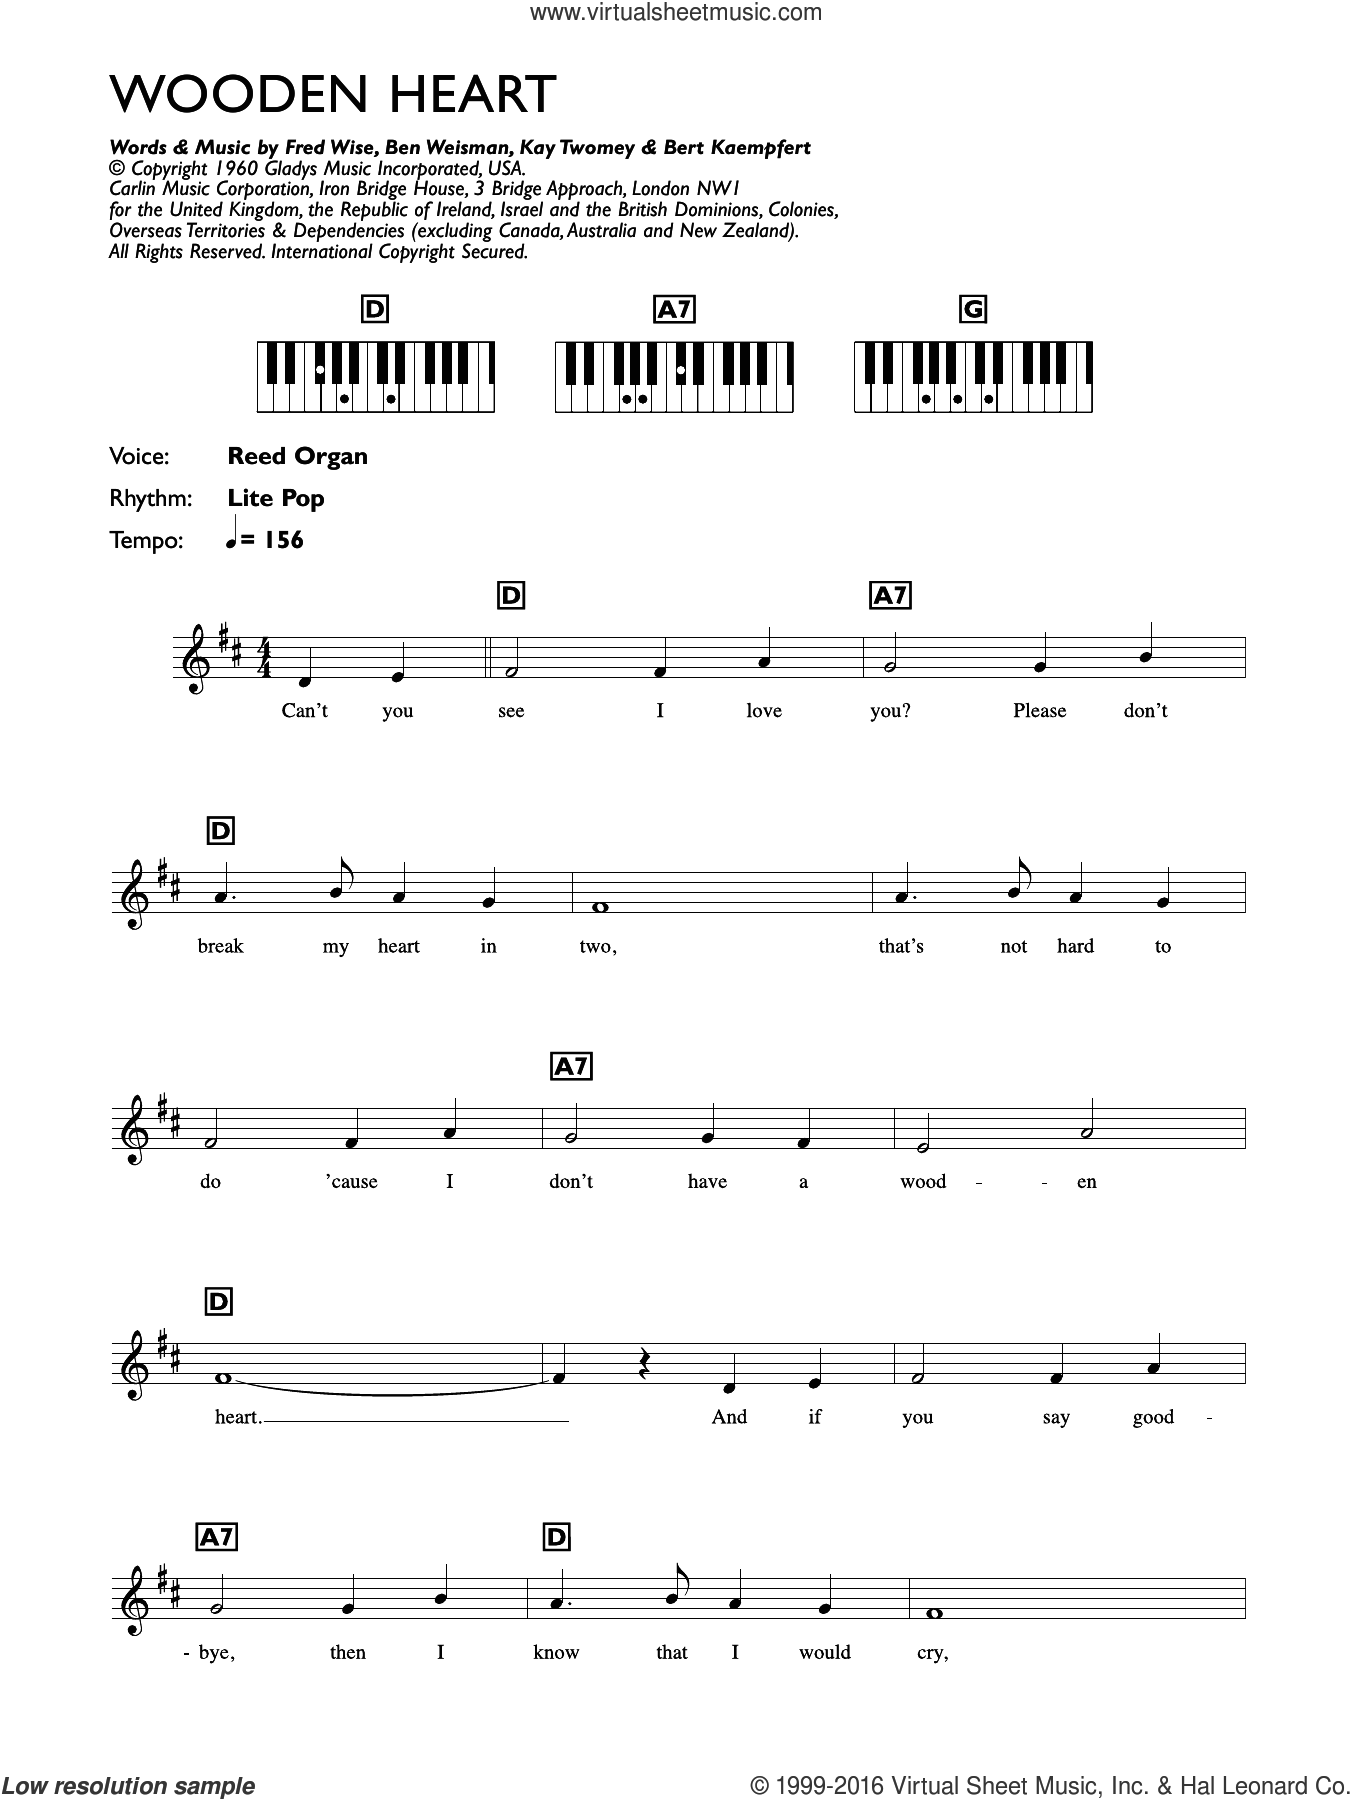 Wooden Heart sheet music for piano solo (chords, lyrics, melody) by Kay Twomey, Elvis Presley, Ben Weisman, Bert Kaempfert and Fred Wise. Score Image Preview.